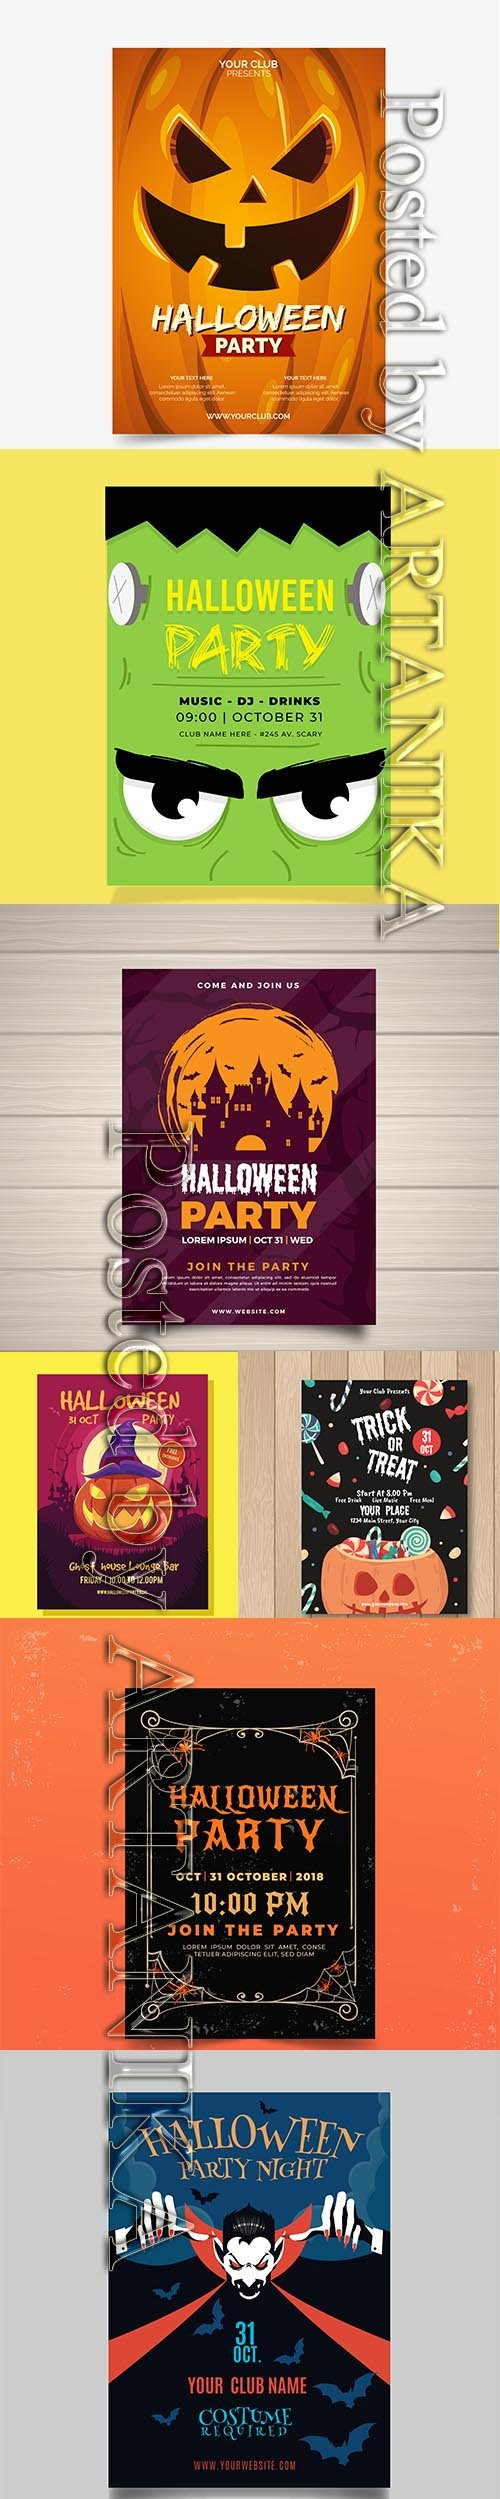 HALLOWEEN PARTY FLYERS AND POSTER PACK VOL 4